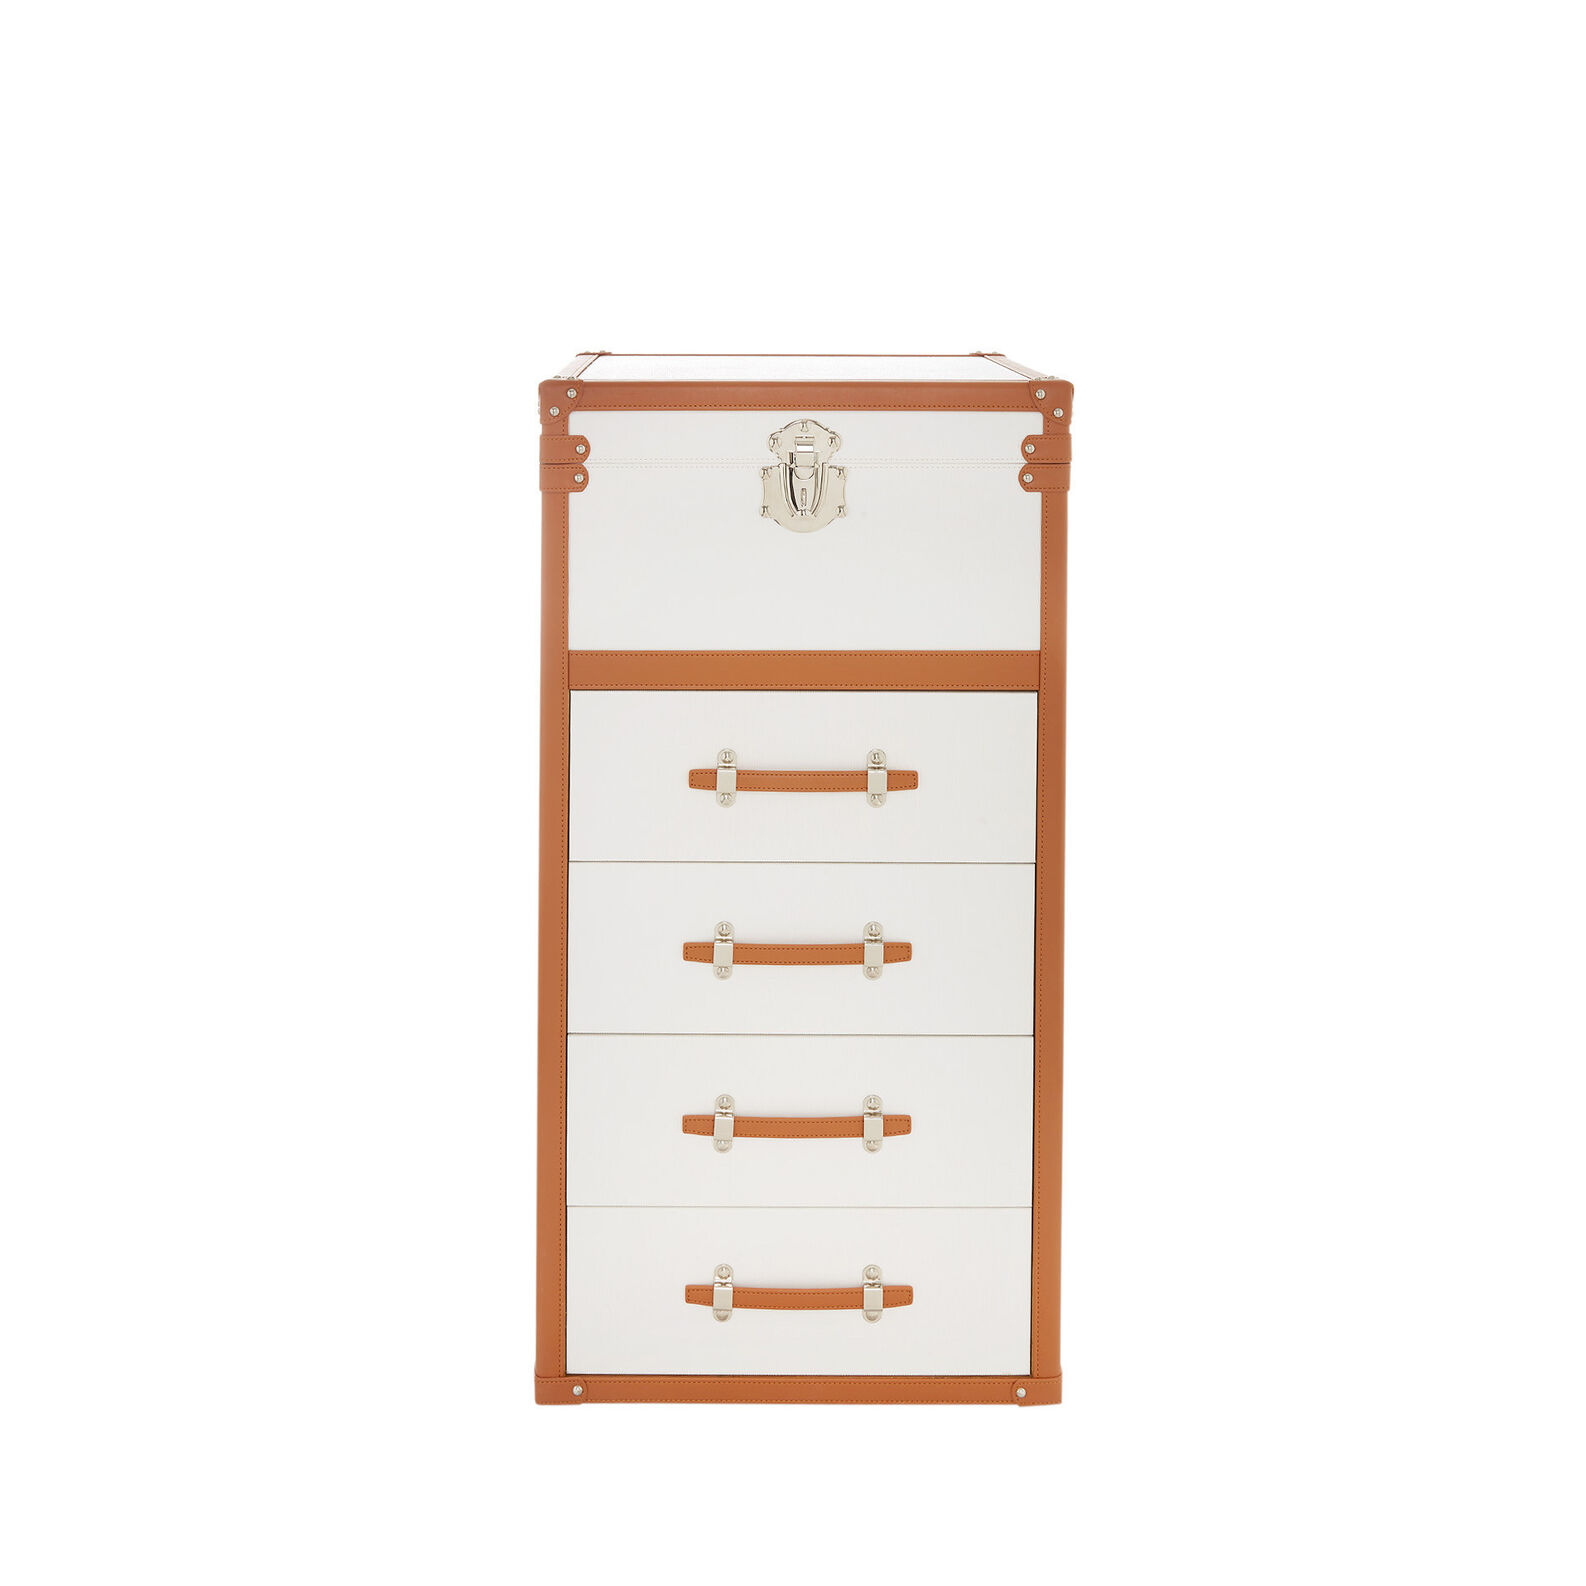 Baule leather-effect chest of drawers